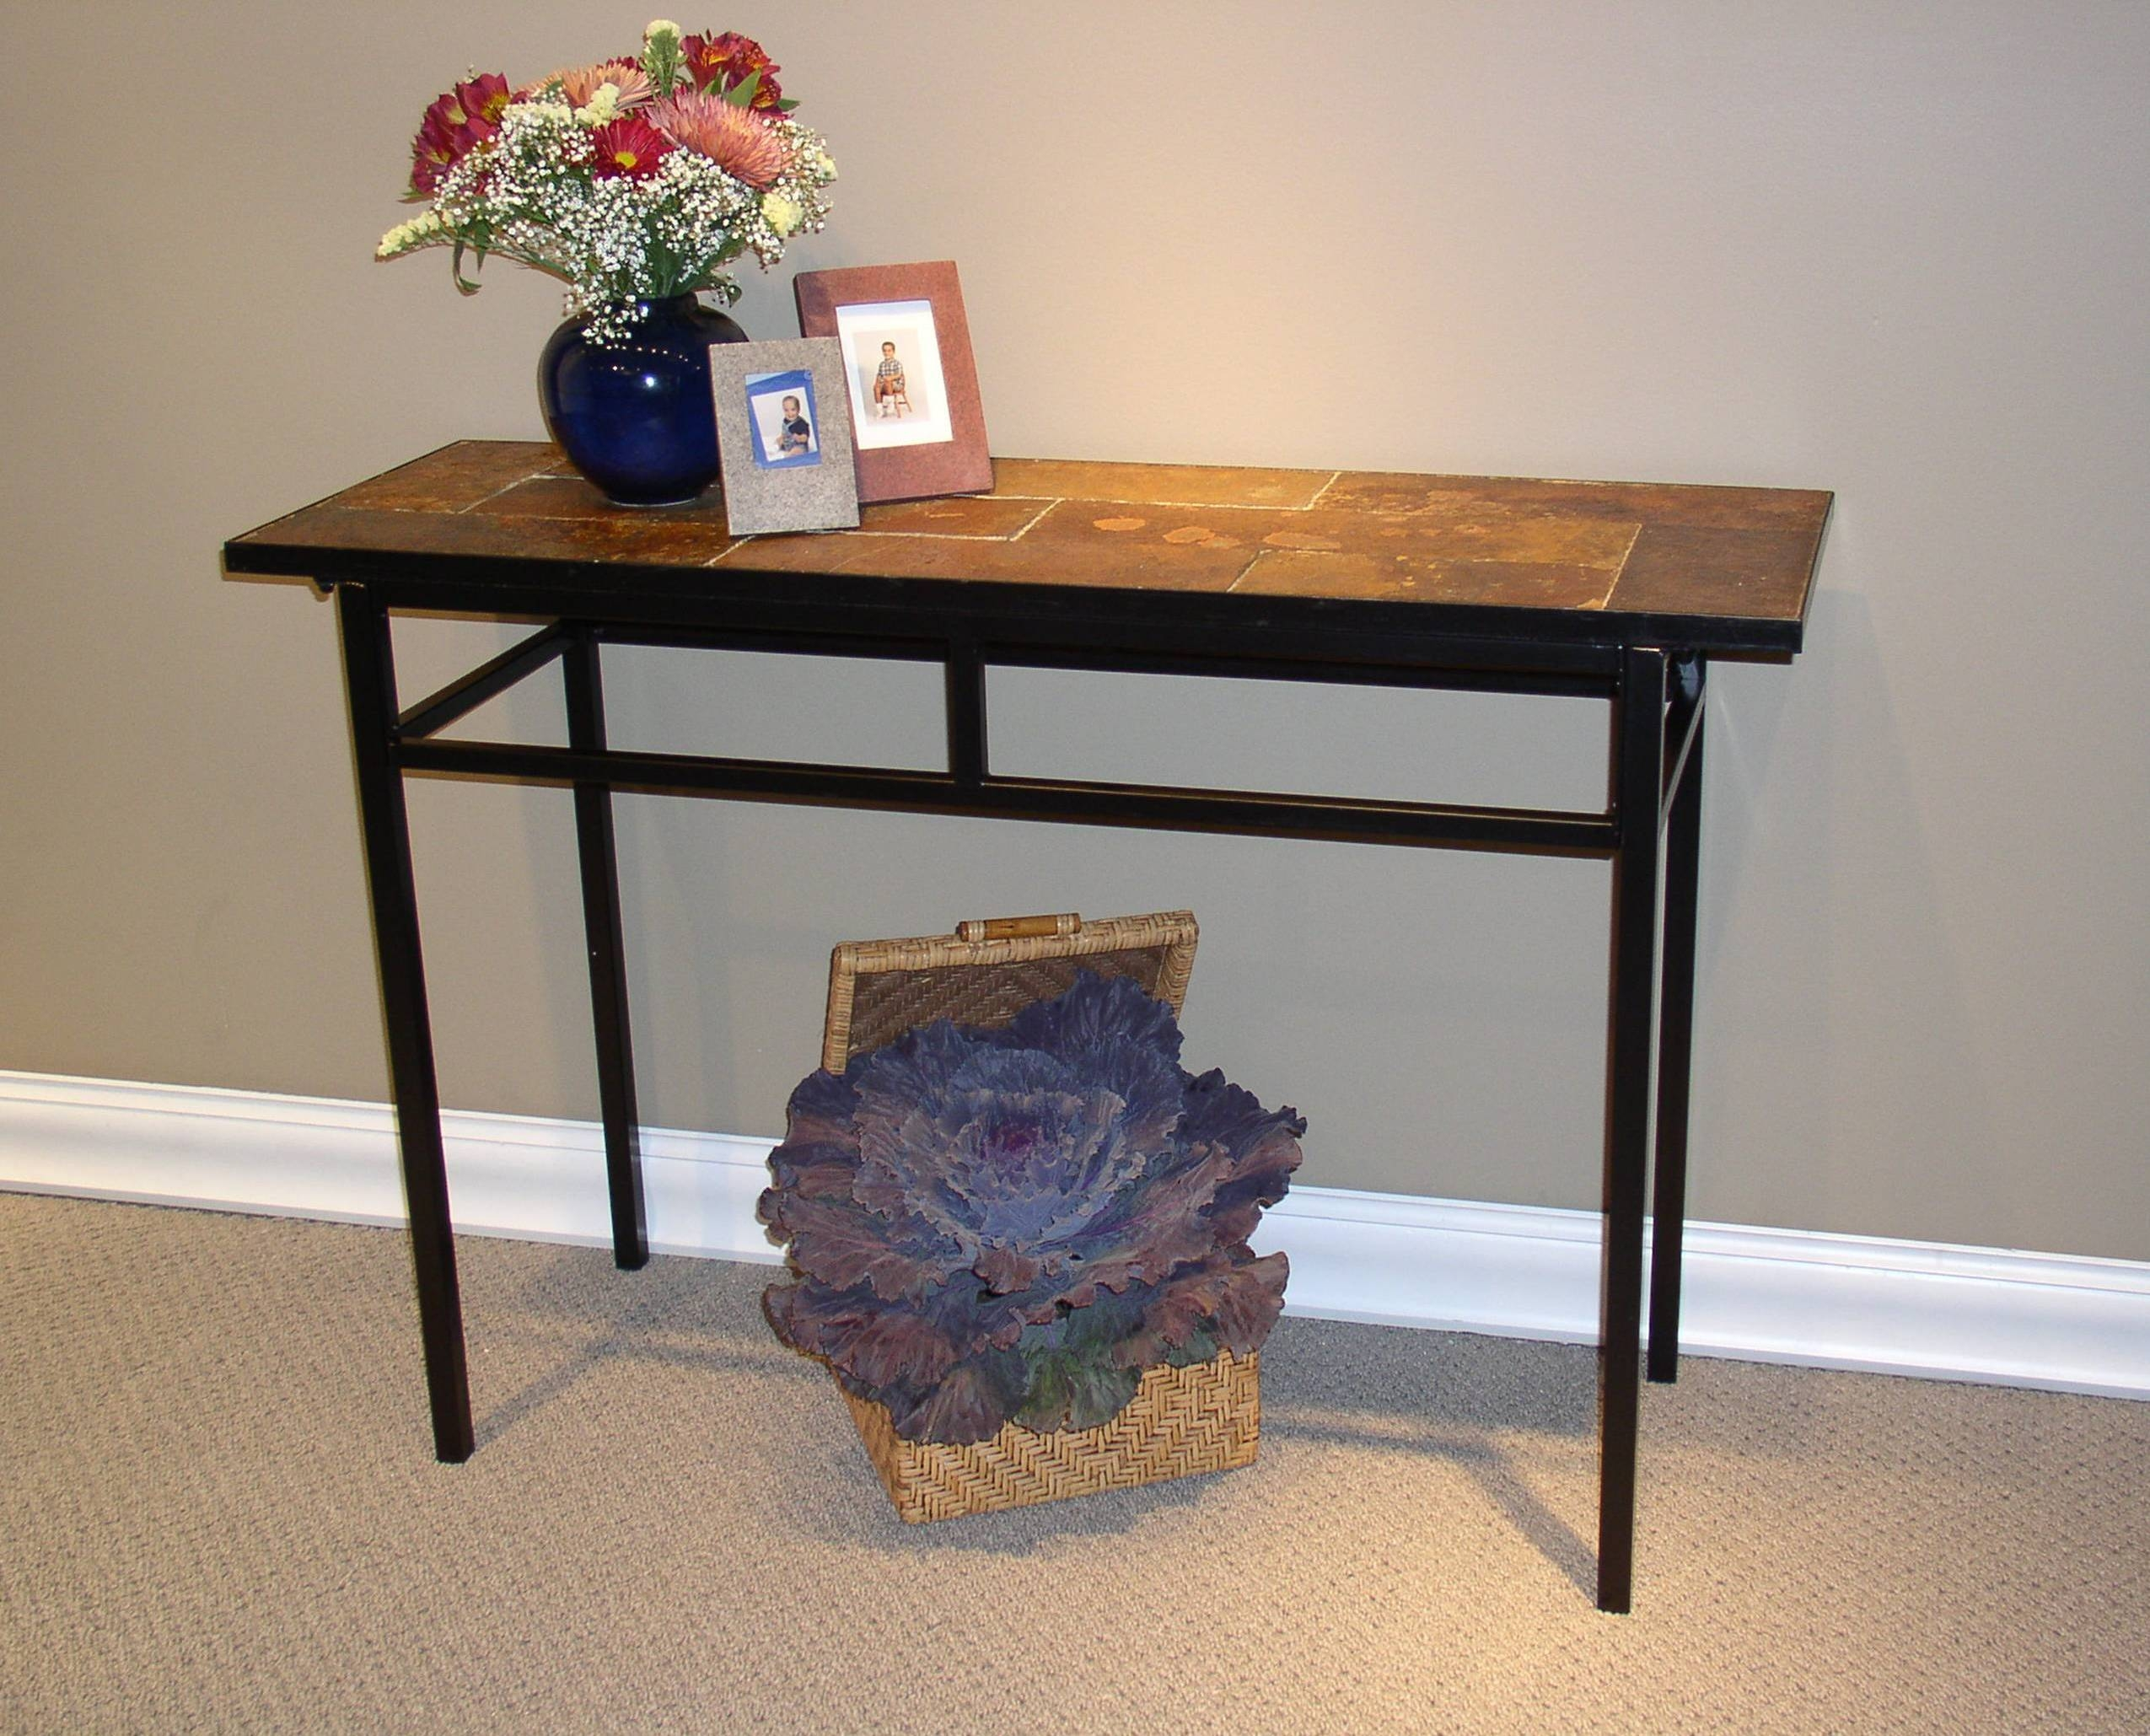 4D Concepts Sofa Table W/ Slate Top In Metal - Beyond Stores intended for Slate Sofa Tables (Image 1 of 15)